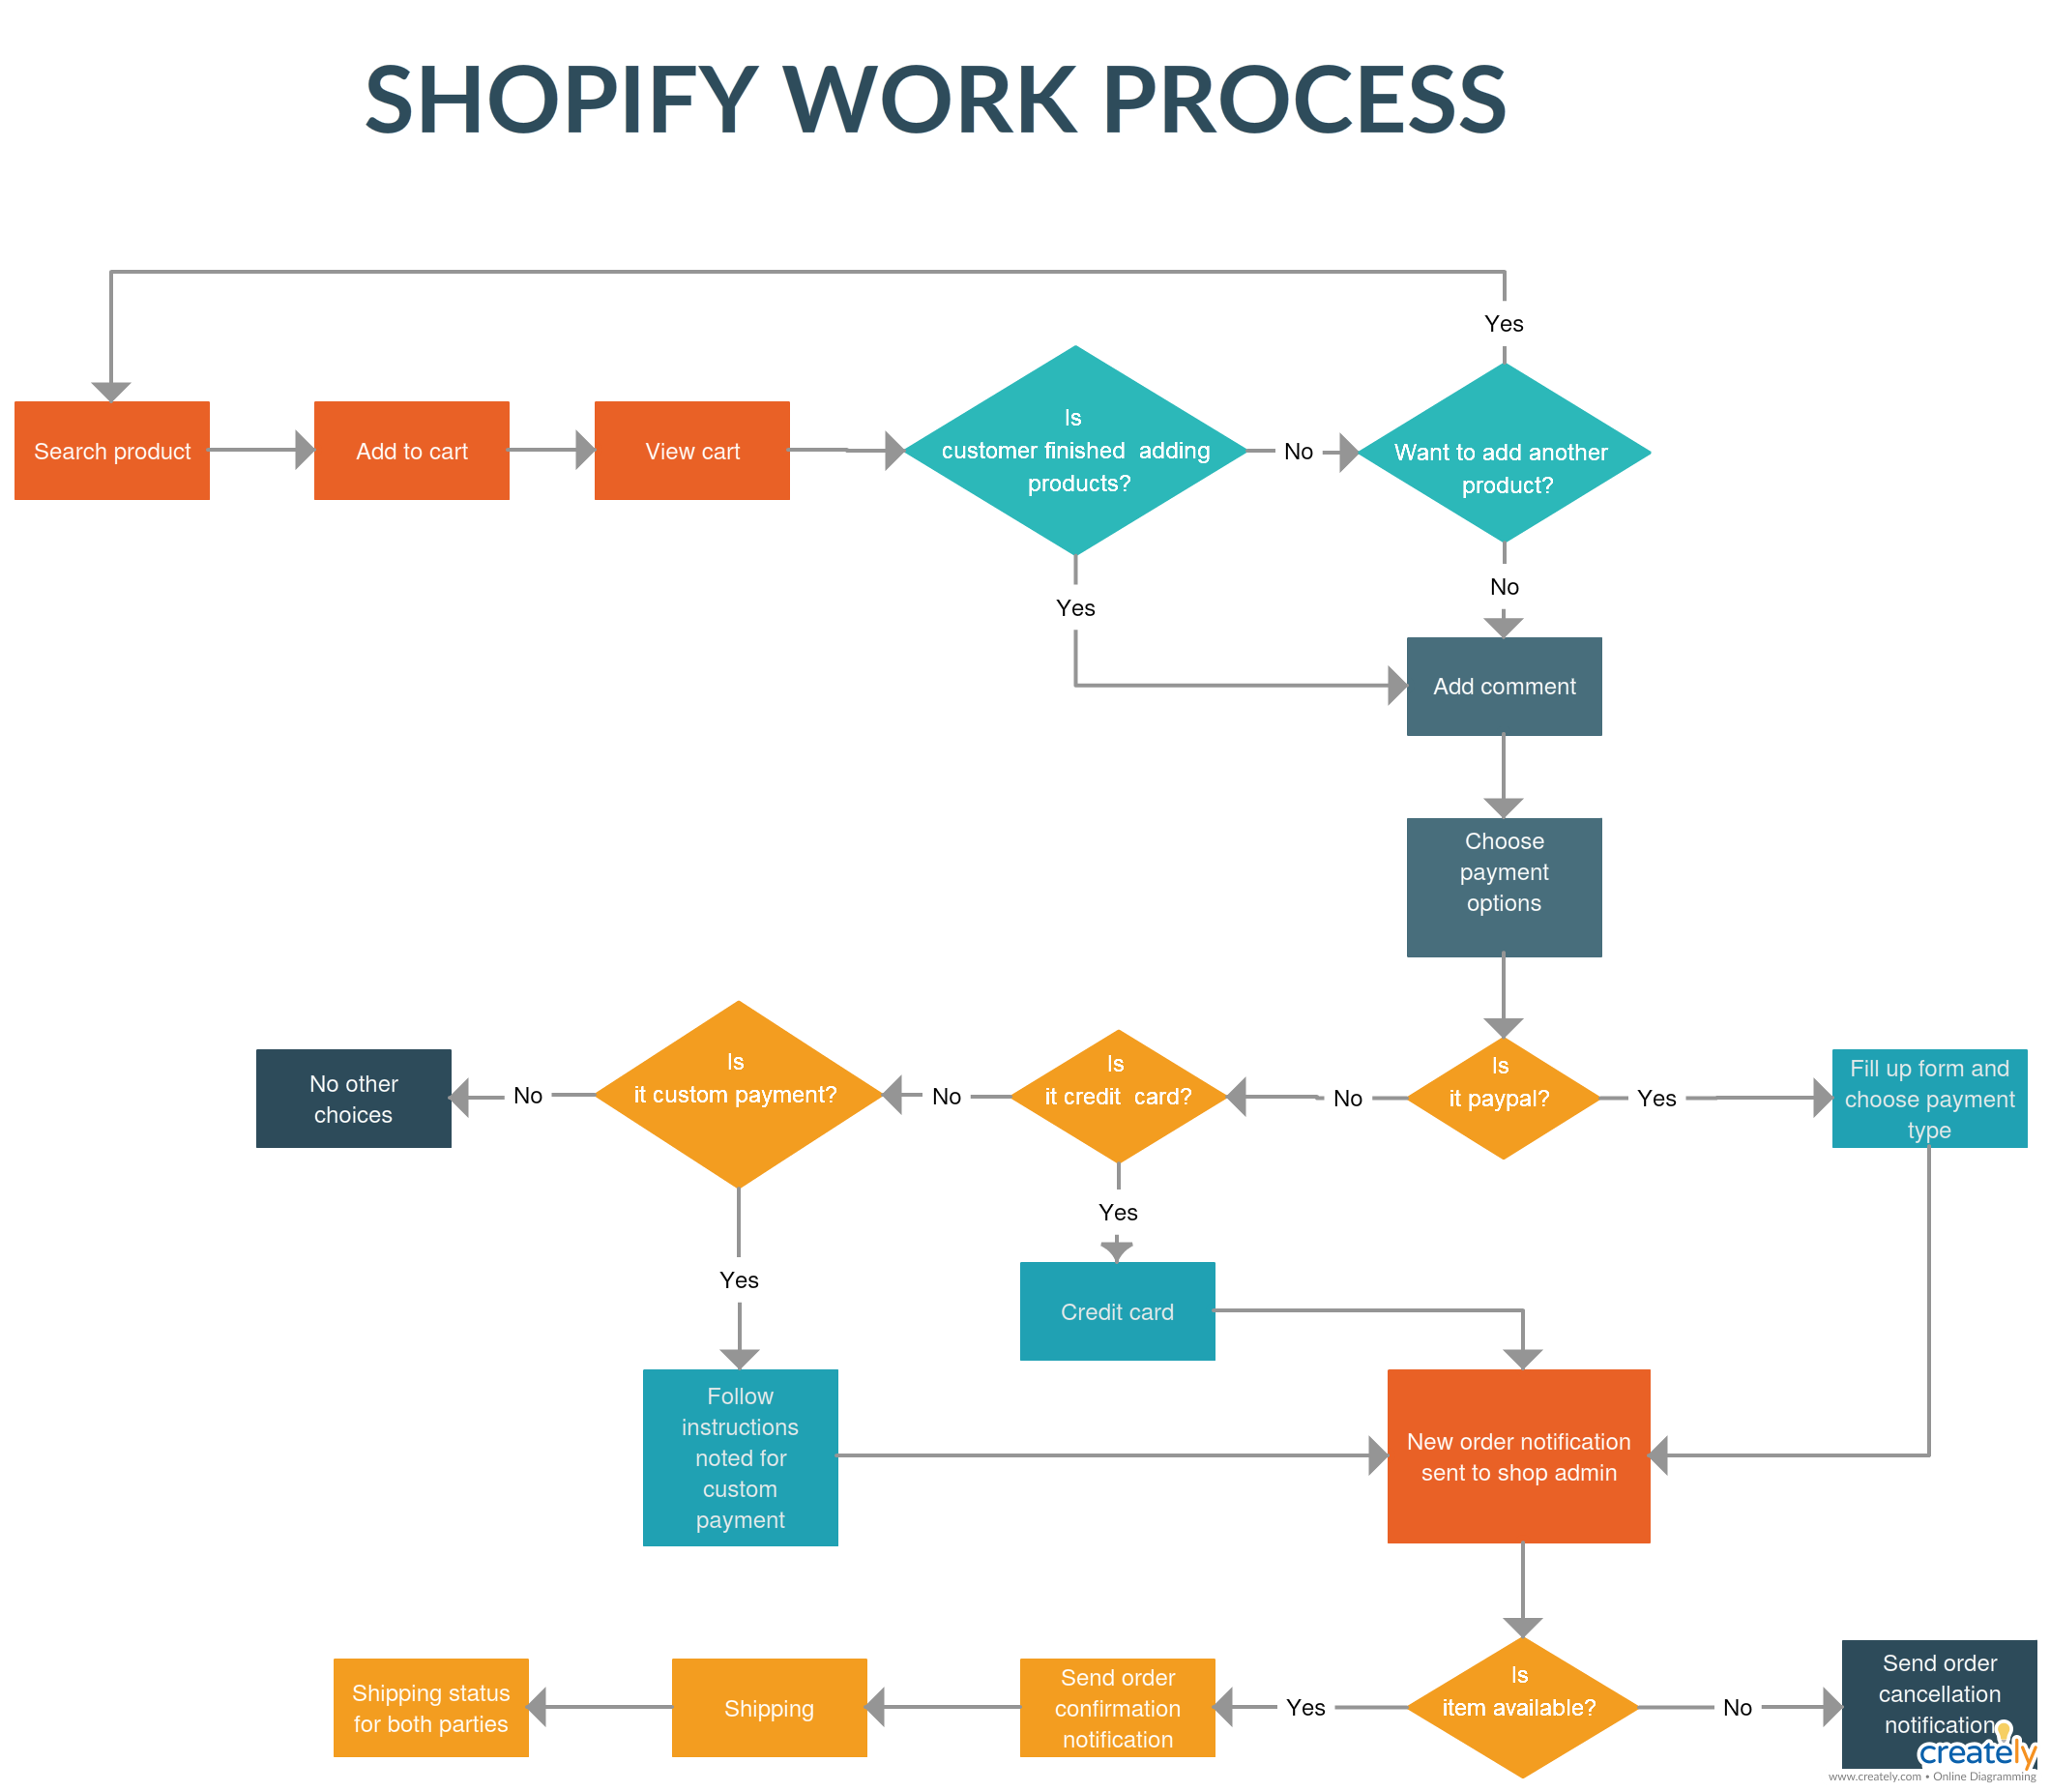 medium resolution of shopify work process great illustration of shopify flow chart where online shoping experience is explained